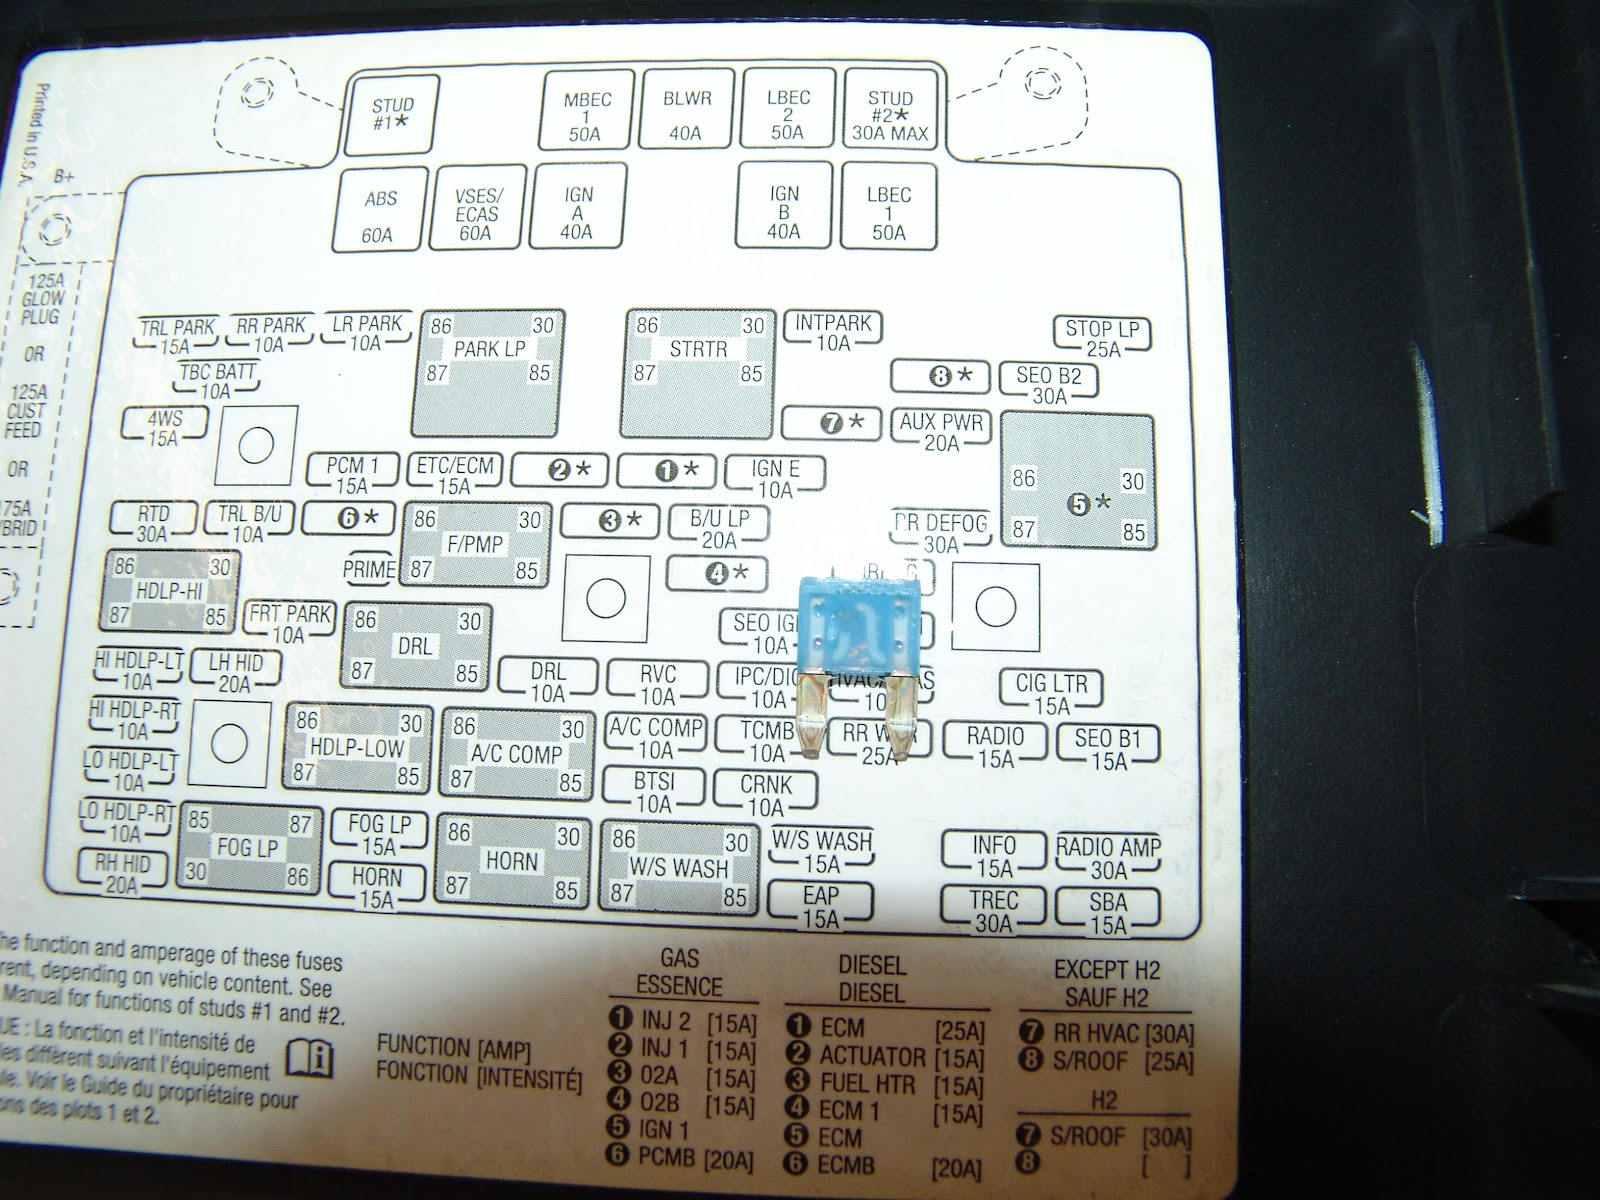 1996 Hummer Fuse Box Great Design Of Wiring Diagram 2008 H3 H2 Location Get Free Image About H1 Alpha 1970